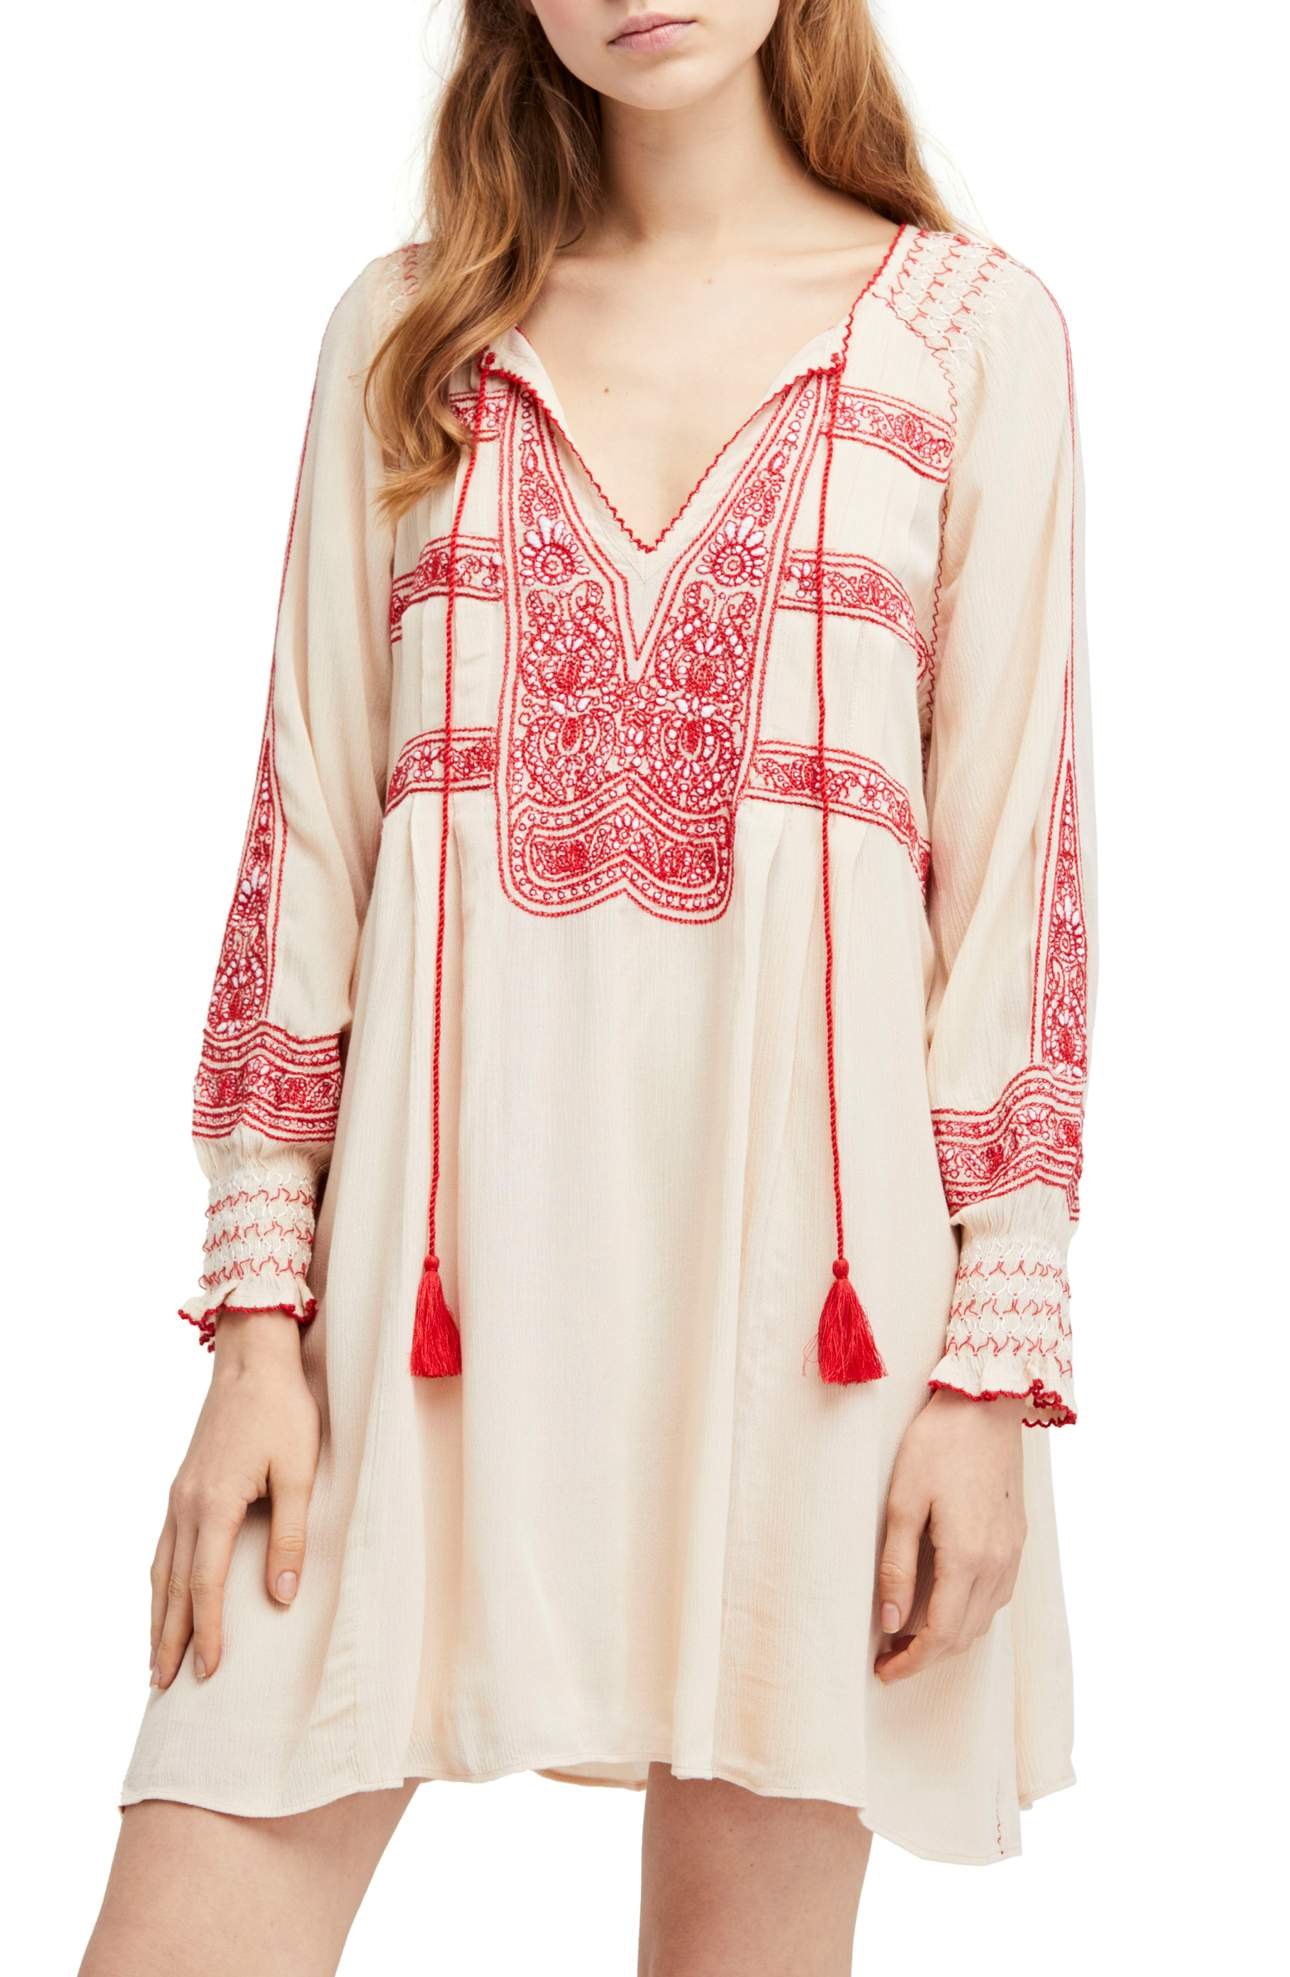 This Wind Willow Minidress was $148 and is now $88.80.<p>The boho dress of your dreams is soft in gauzy, lightweight cotton and lavishly decorated with pretty contrast embroidery.</p><p>(Image: Nordstrom/Free People){&amp;nbsp;}</p>